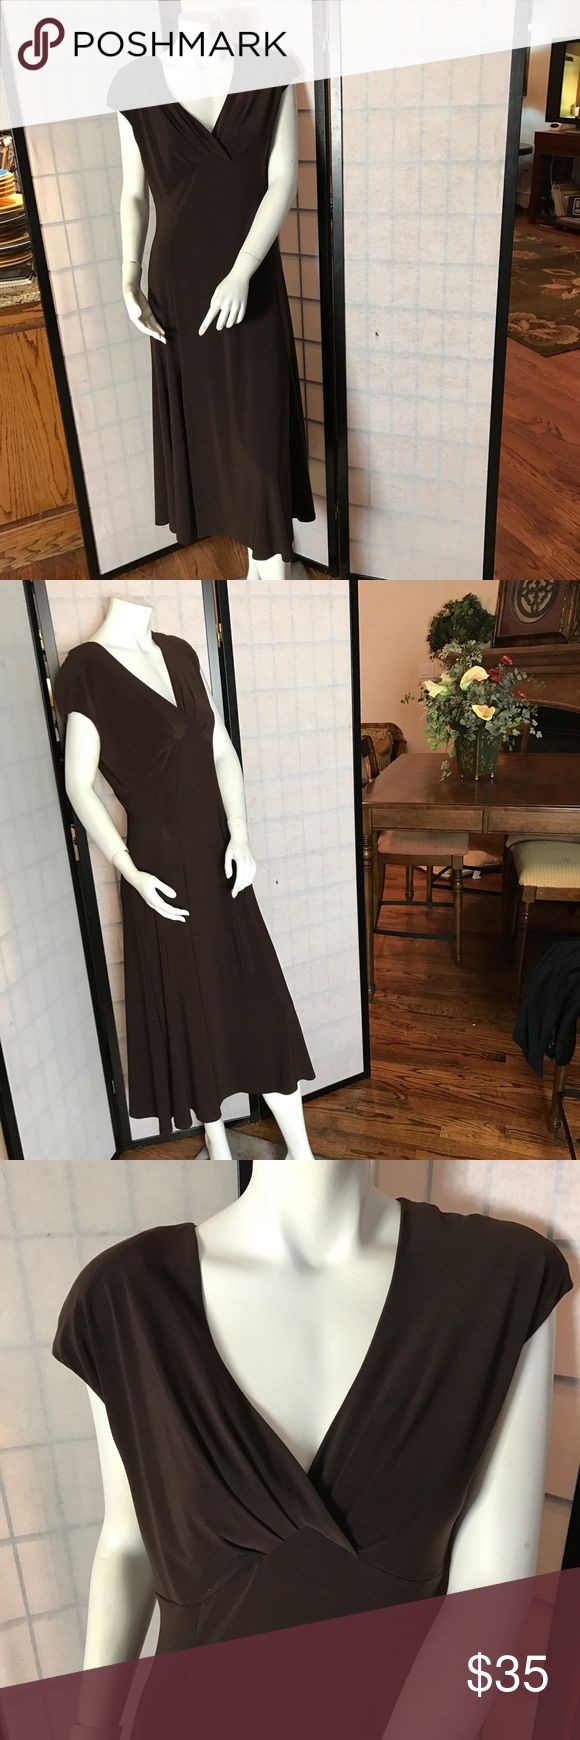 Jones New York Beautiful Brown dress Jones New York chocolate brown dress for the office or dinner dates. Next day shipping. Jones New York Dresses